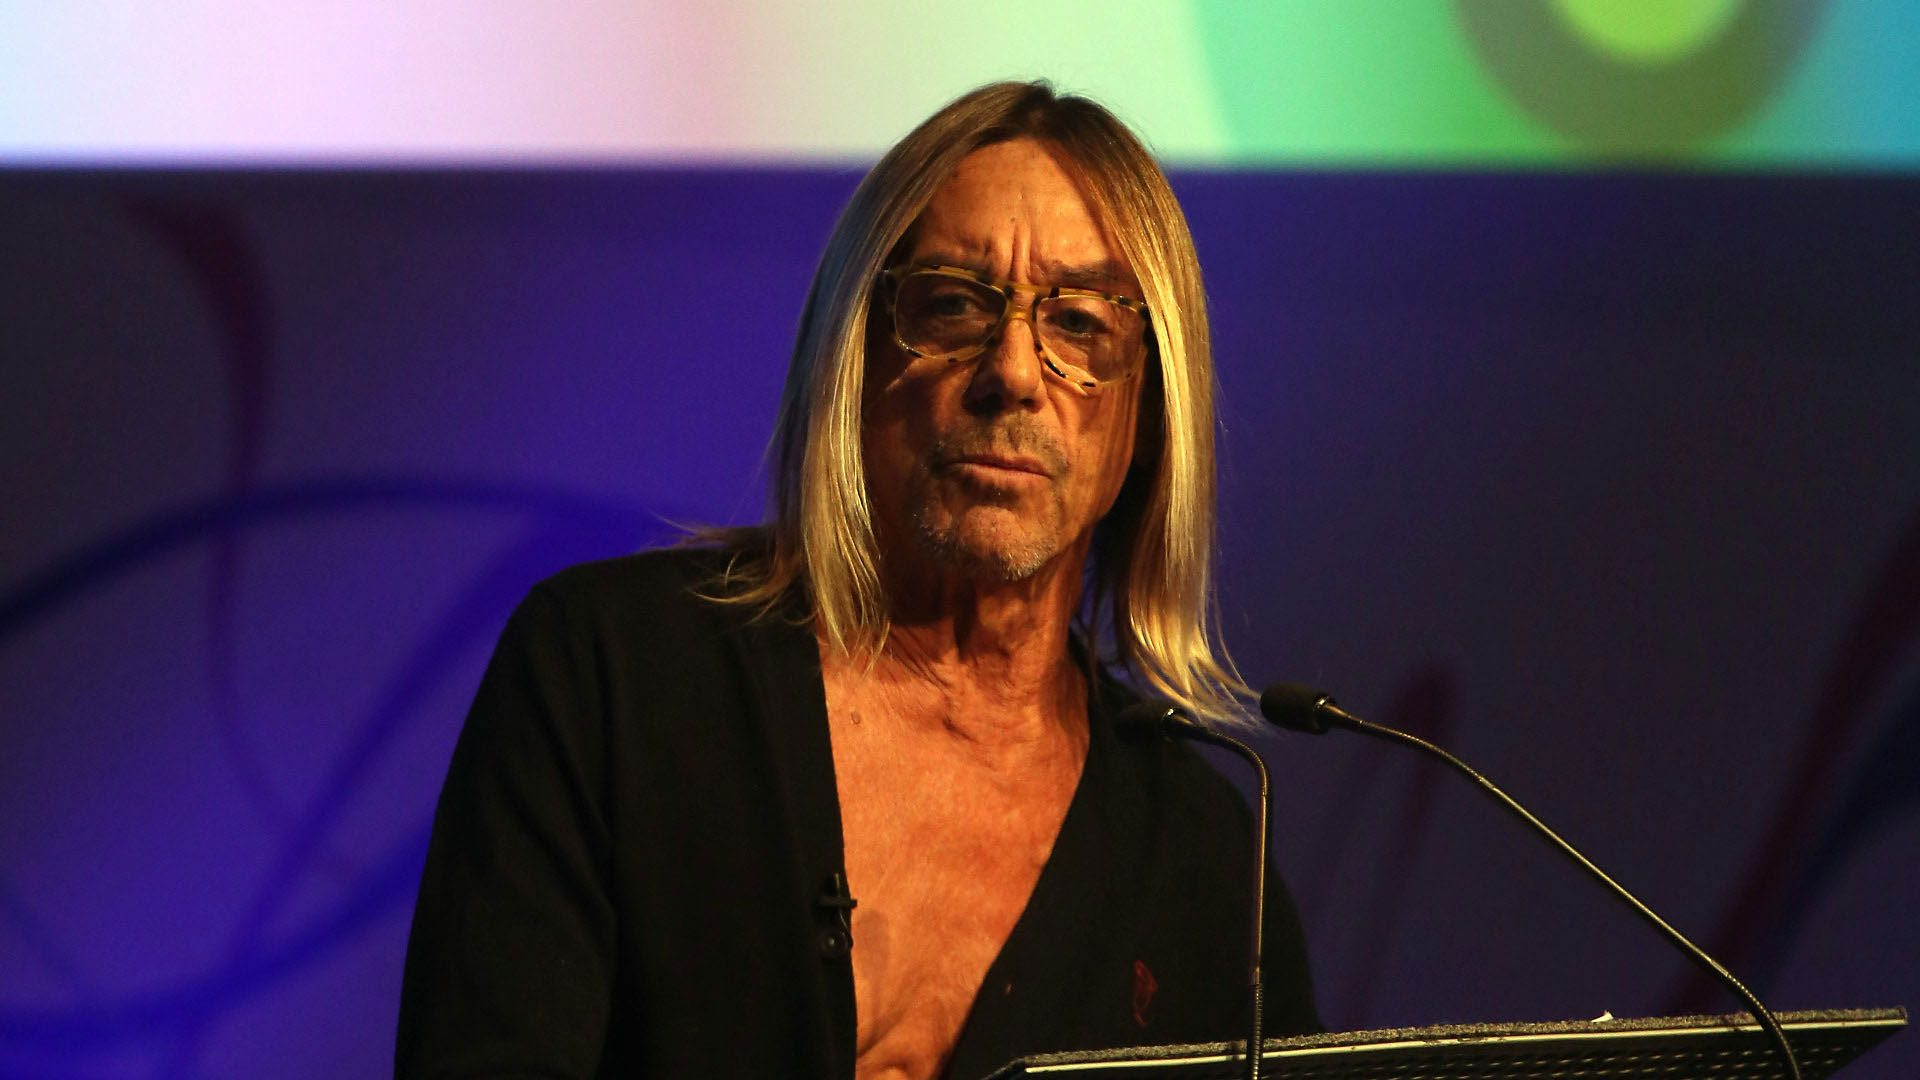 The iggy torrent stooges and discography pop (Proto